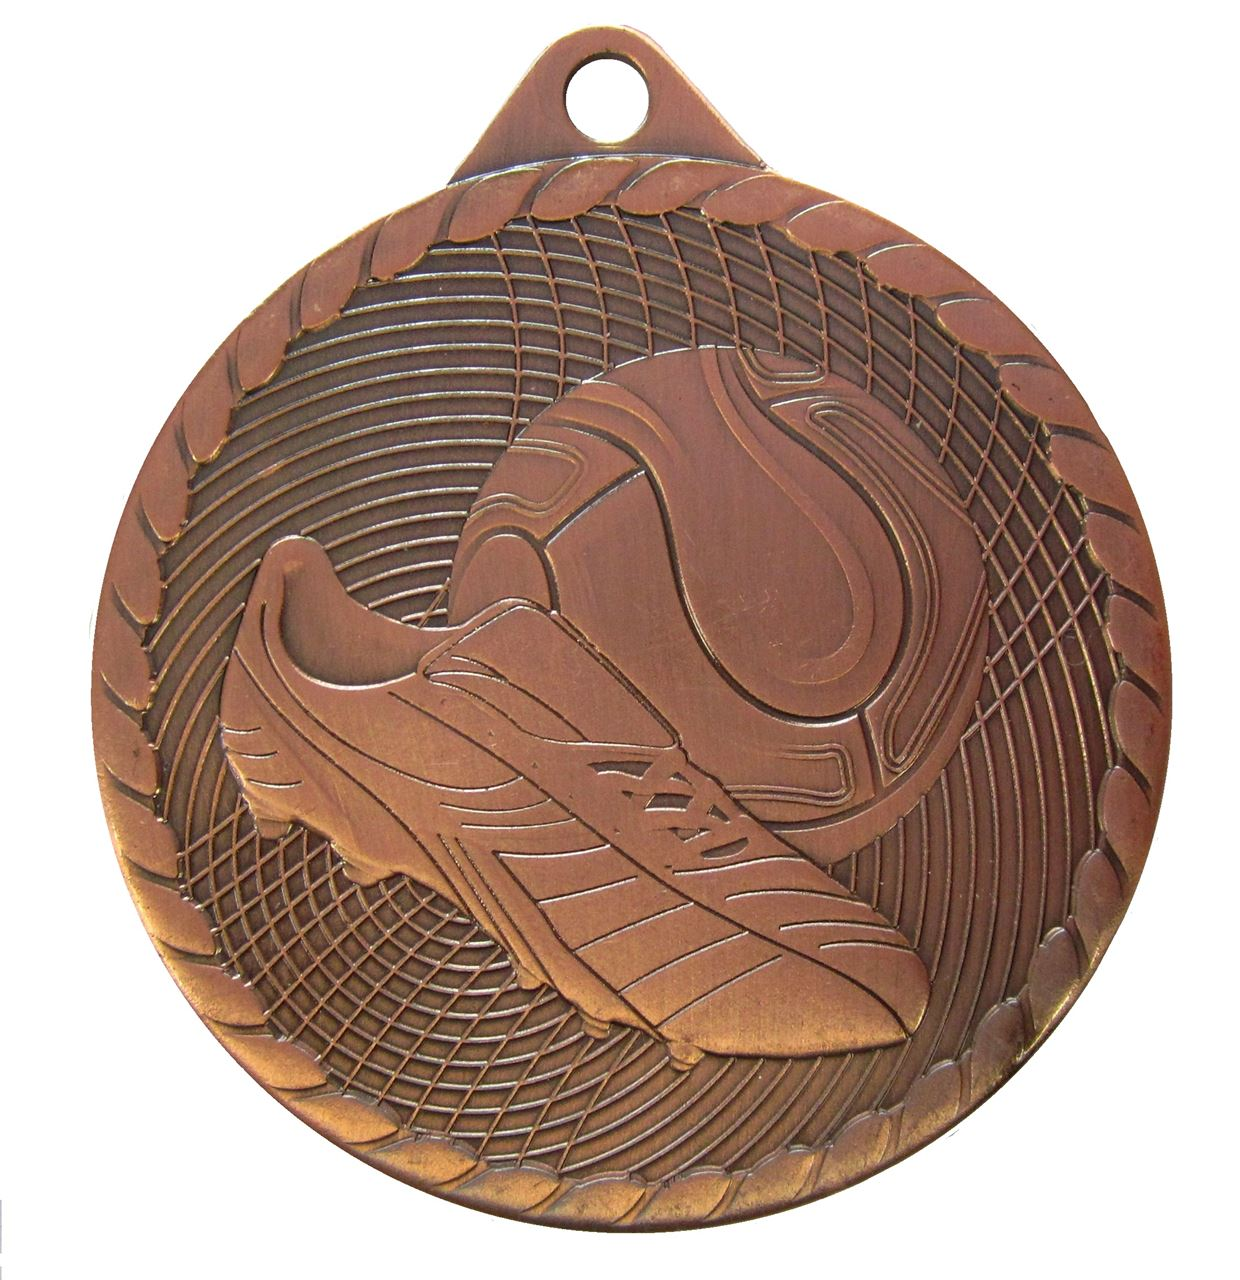 Copper Isoline Economy Football Medal (size: 50mm) - 63851